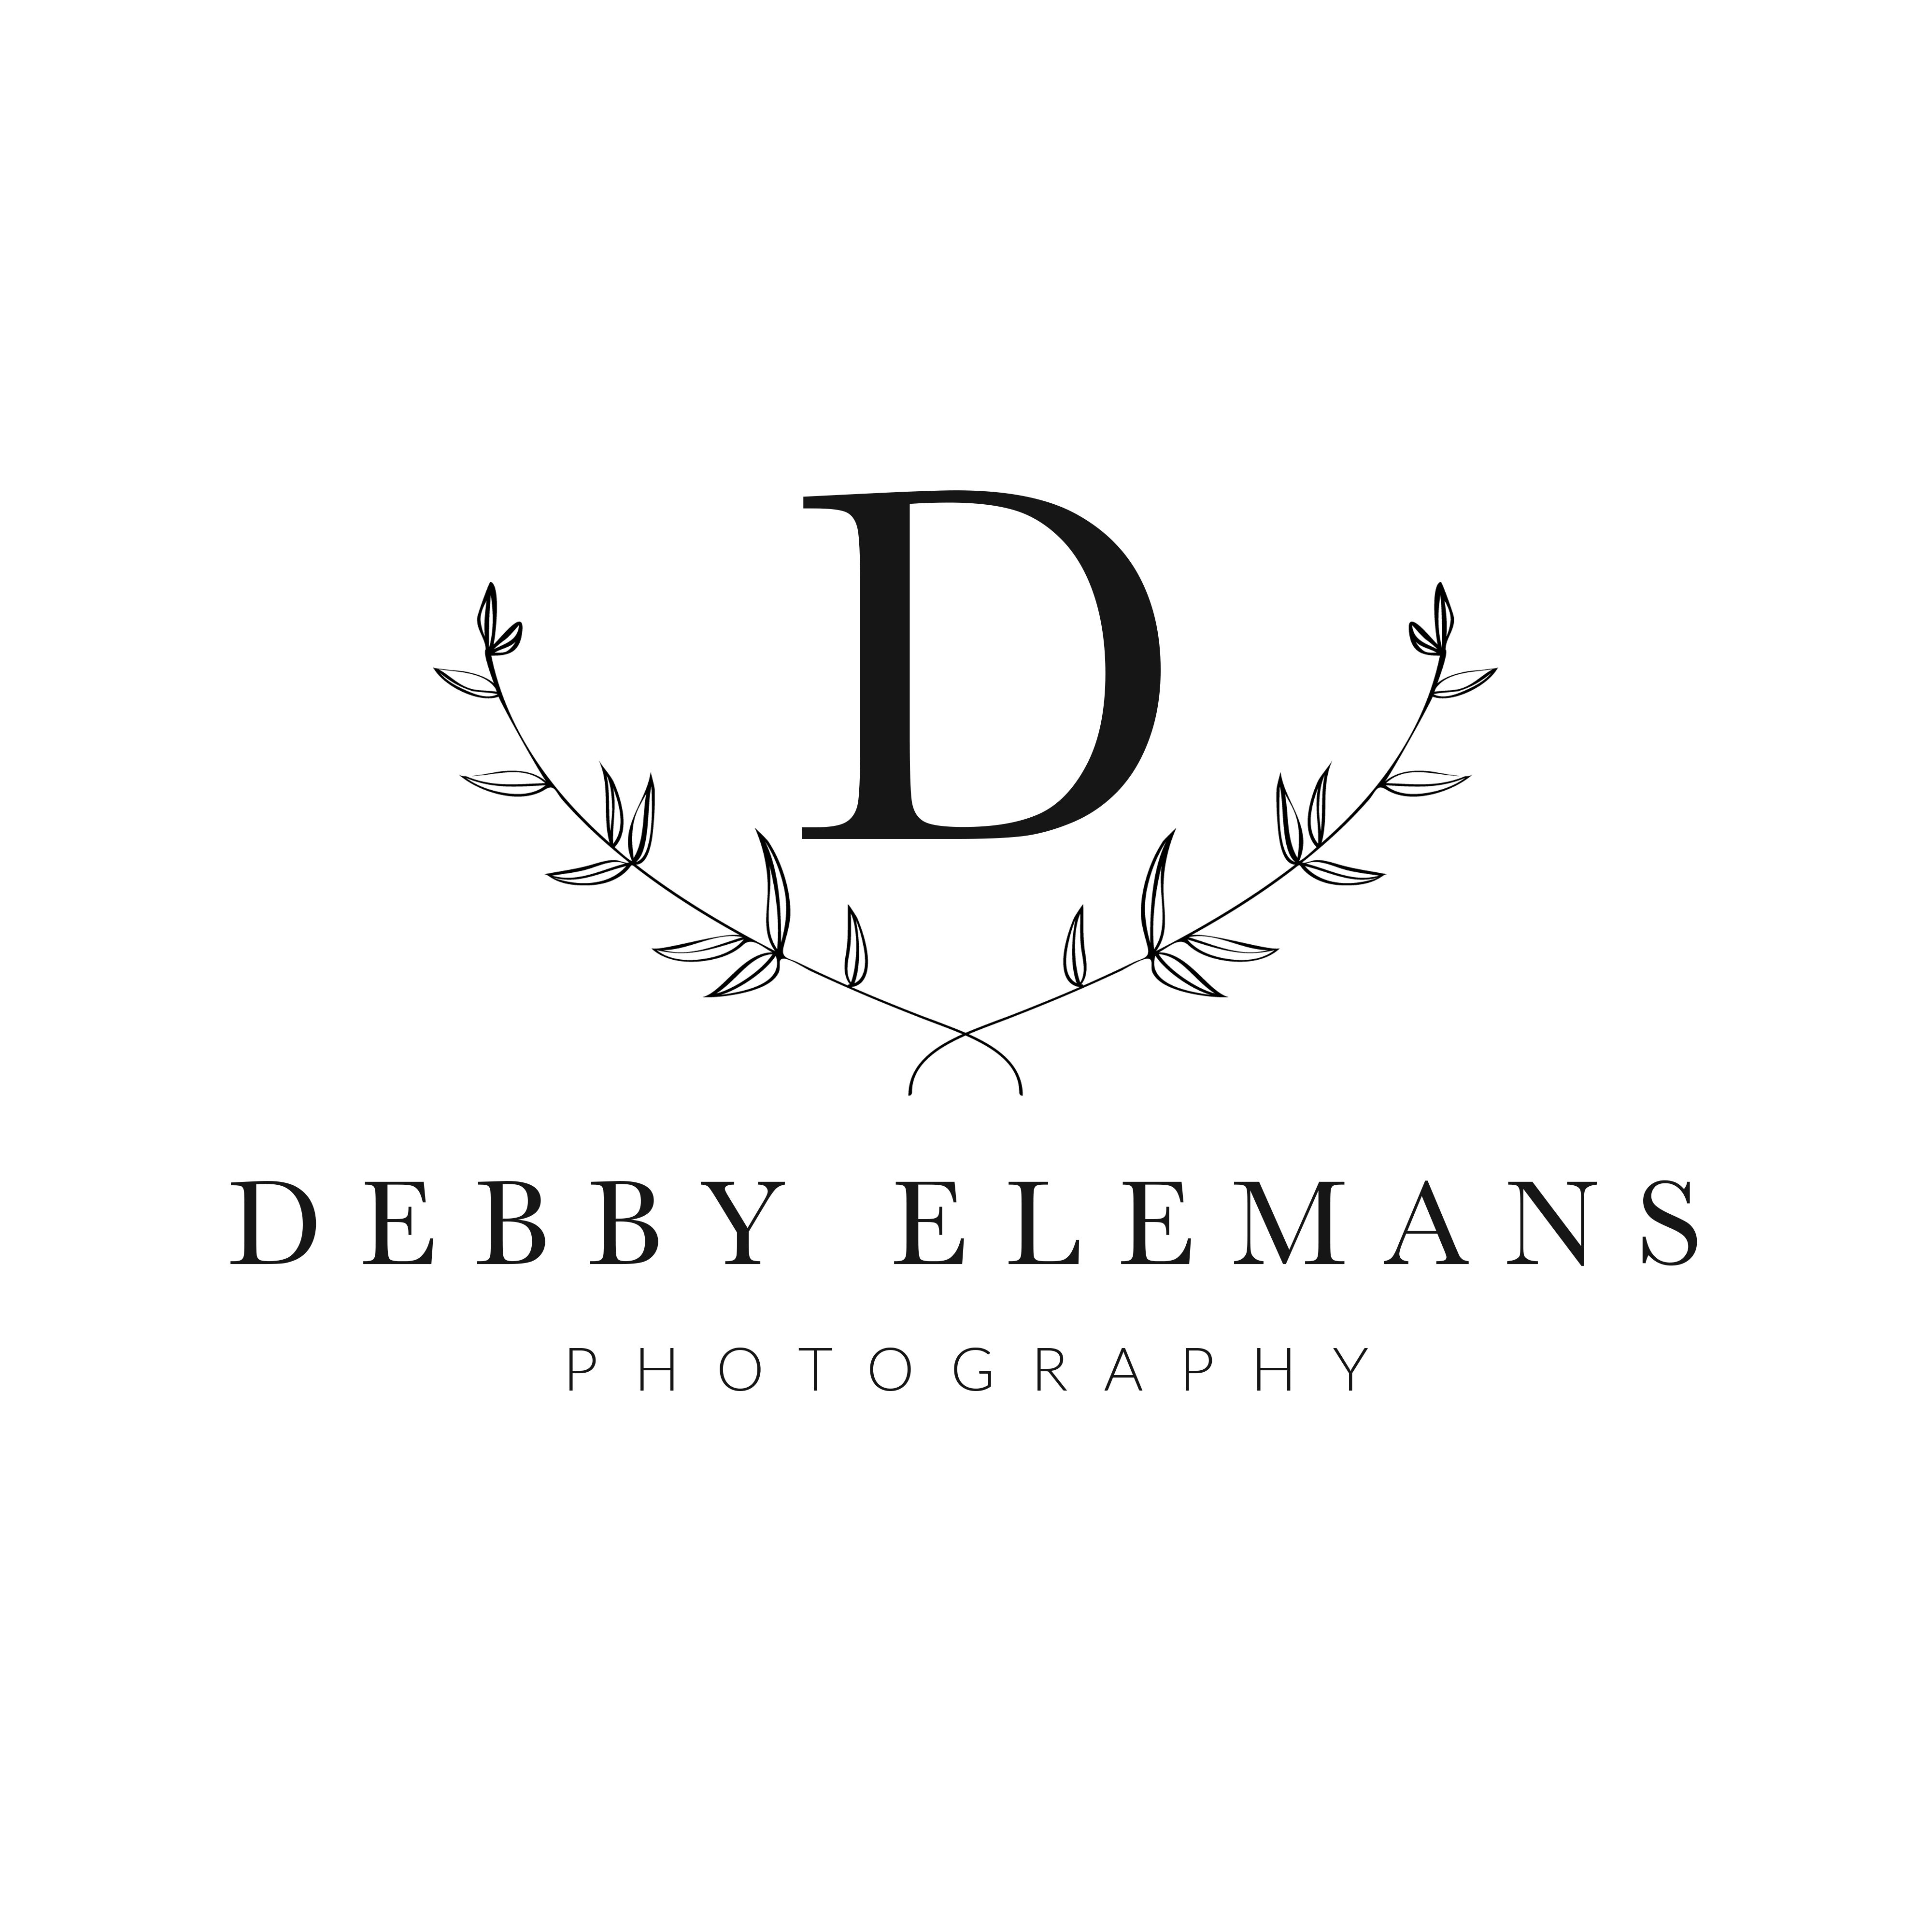 Debby Elemans Photography